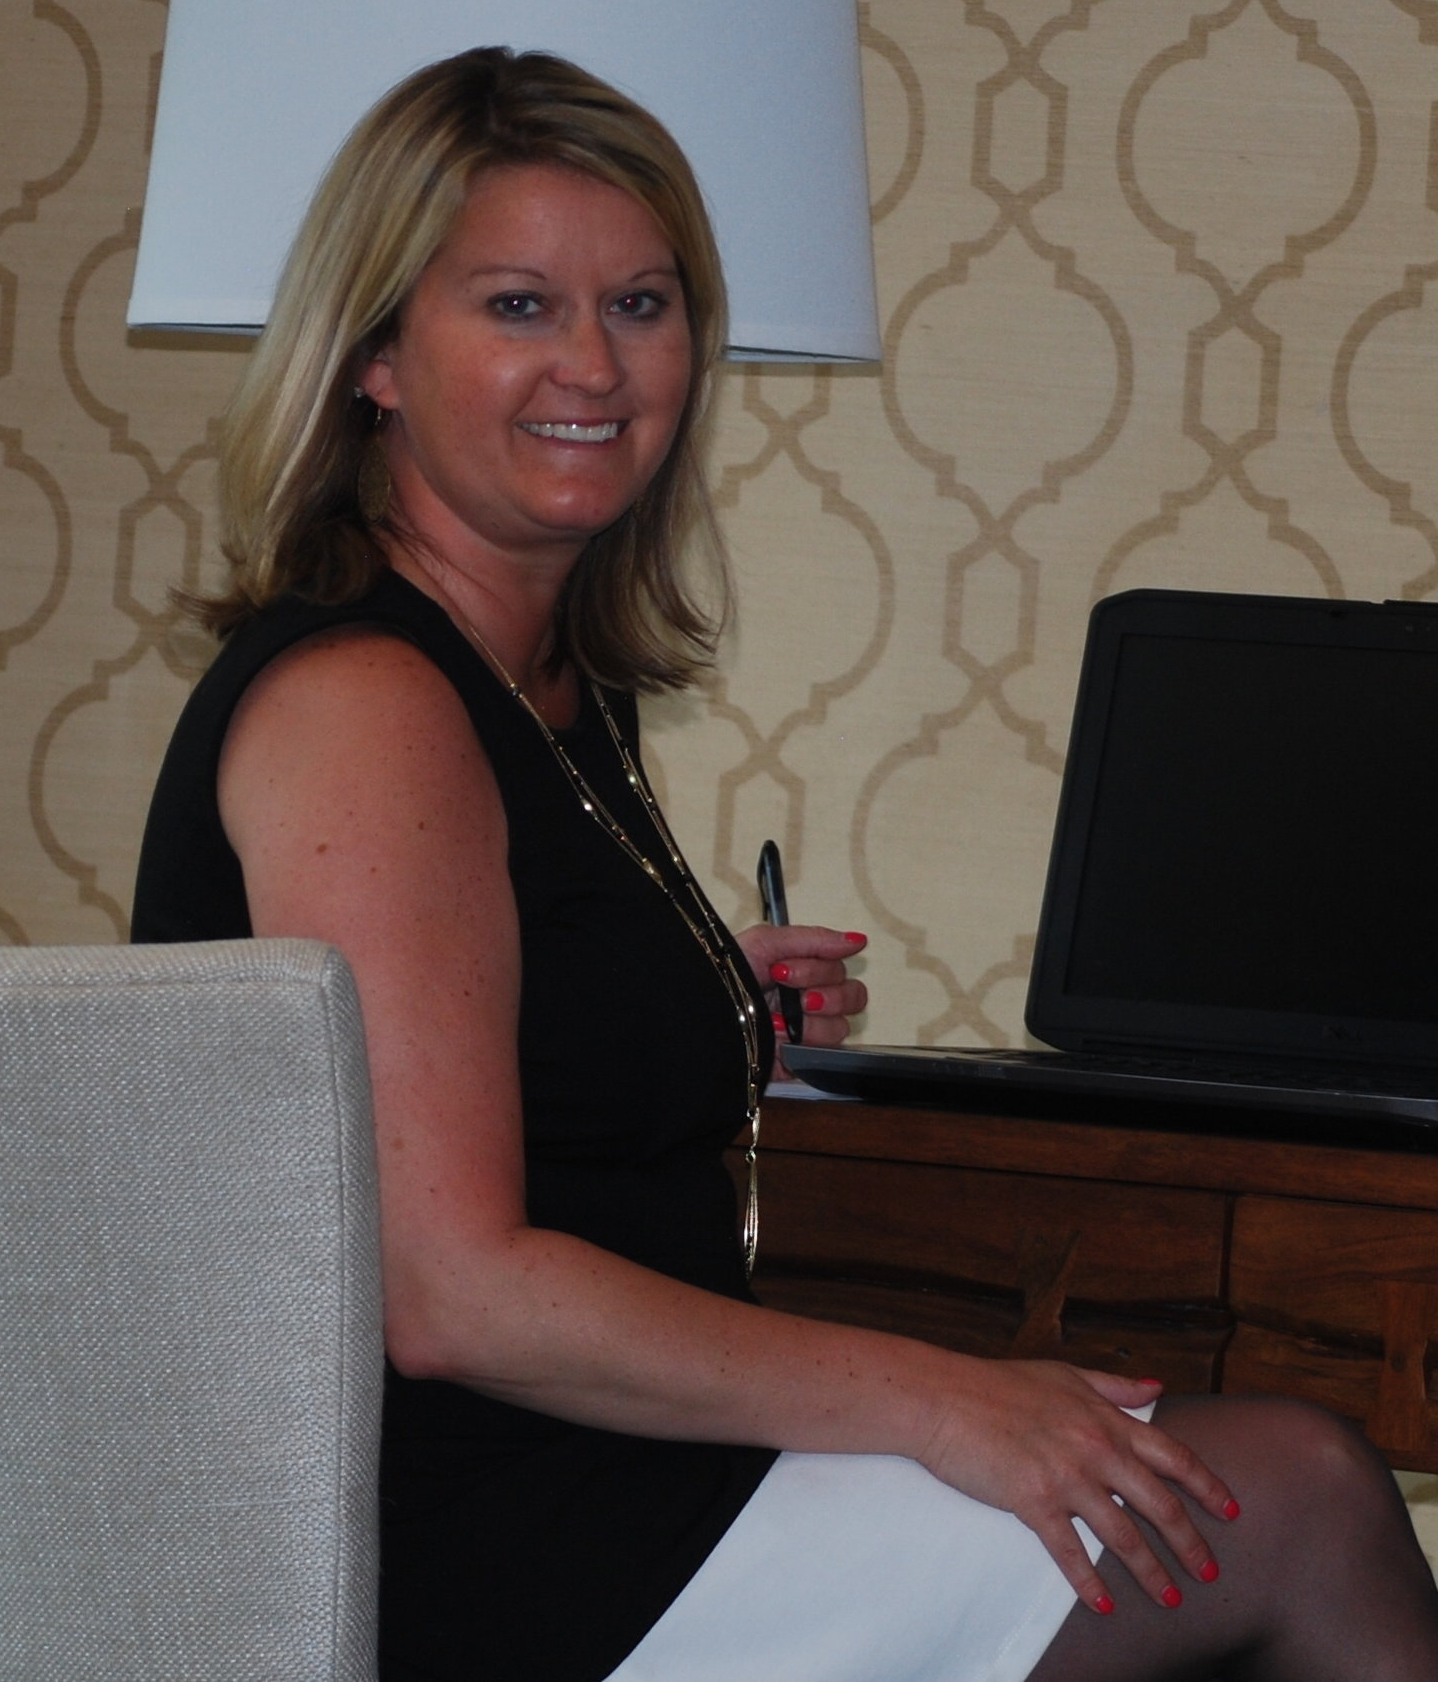 Amanda Hrehowsik - Client Services DirectorCustomer satisfaction is what drives me here at The Store.  We only buy from the best manufacturers in the country, but sometimes things can go awry.  I am on top of every issue and never leave a client unsatisfied or leave anything unresolved.